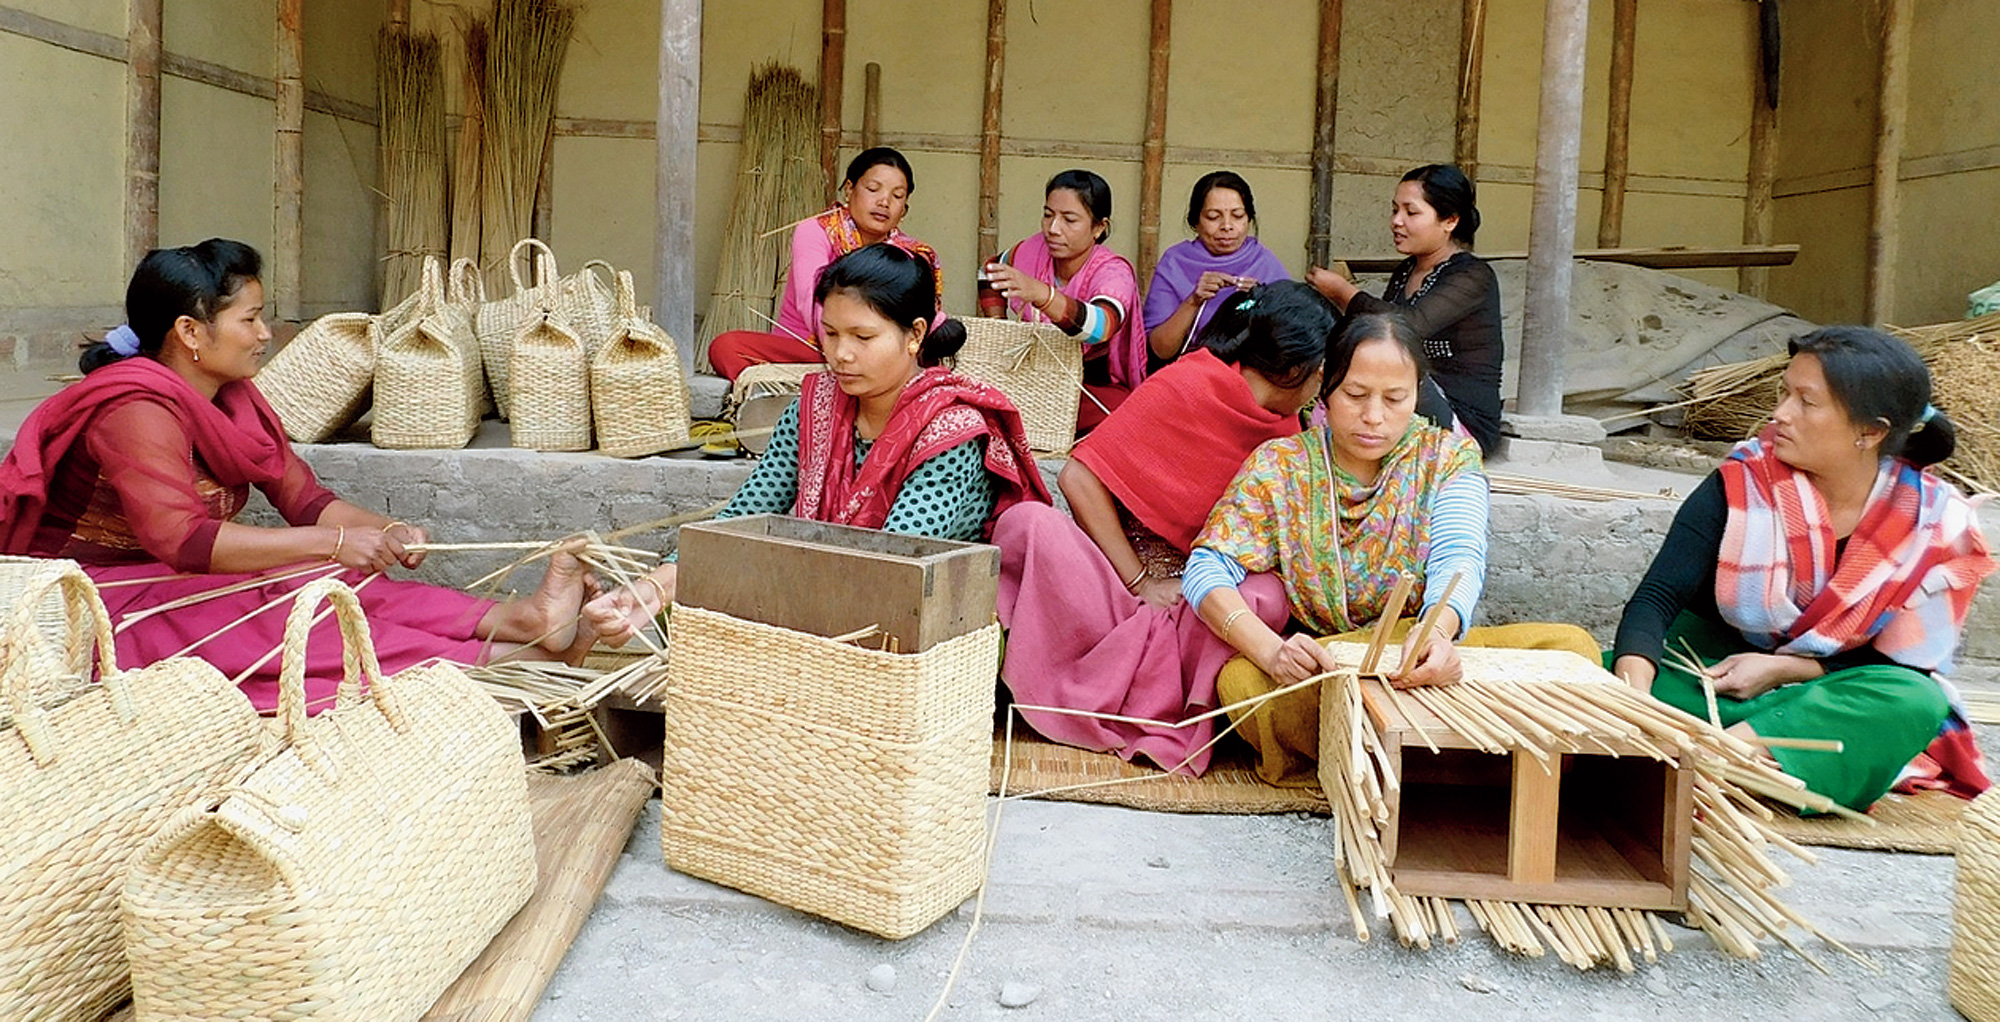 Manipur reed makes a trade mark